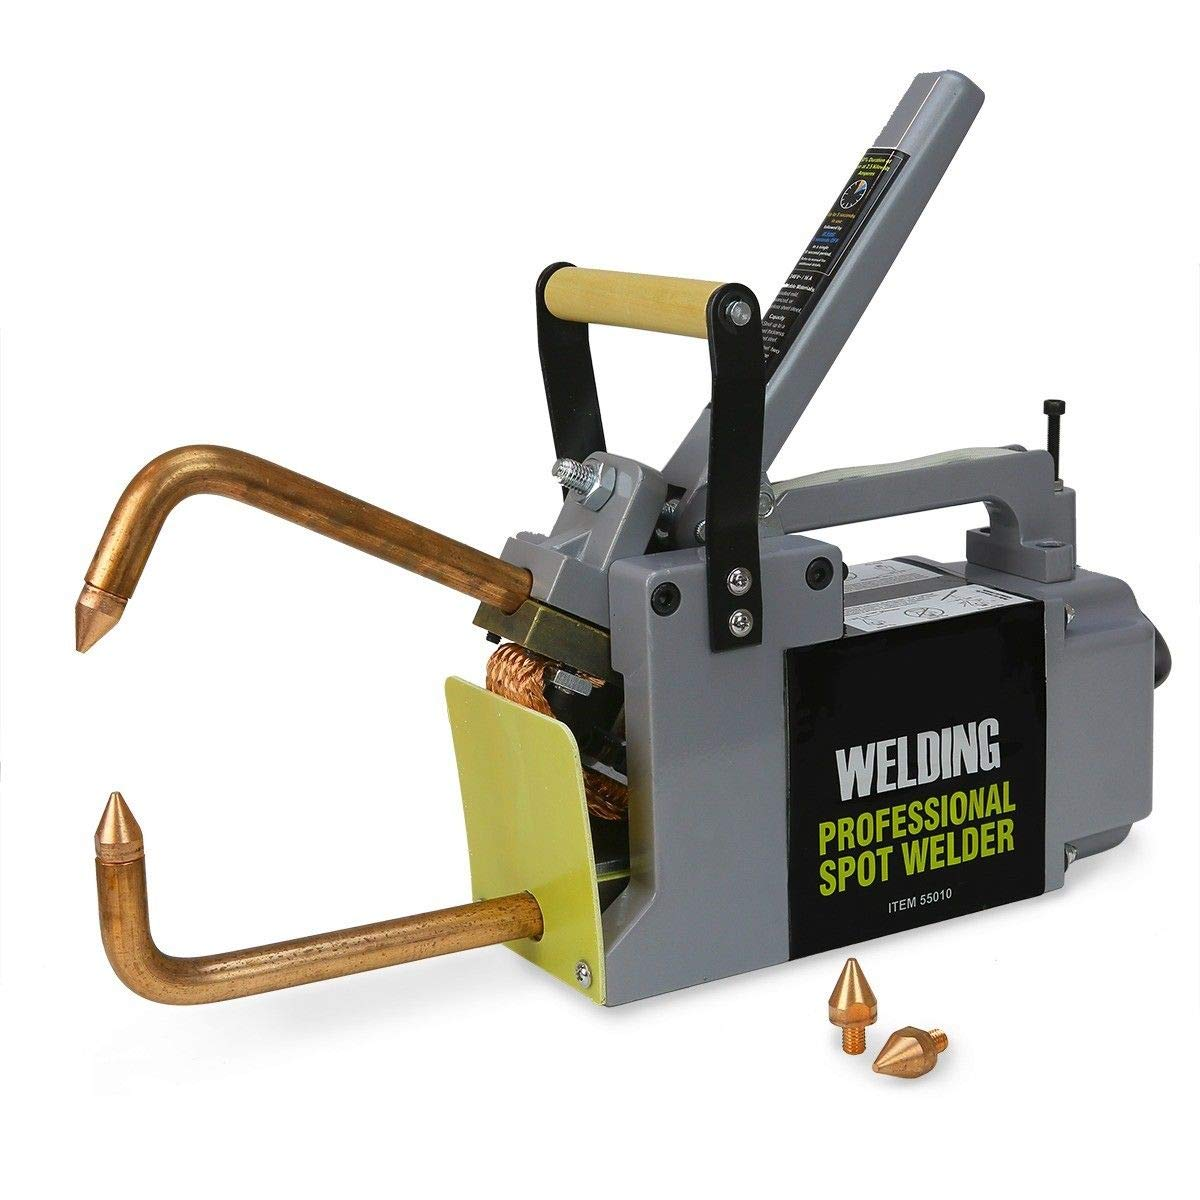 Stark Professional Electric 240 Volt Portable Spot Welder Machine Welding Systems DIY Welding Tips with Handle by Stark USA